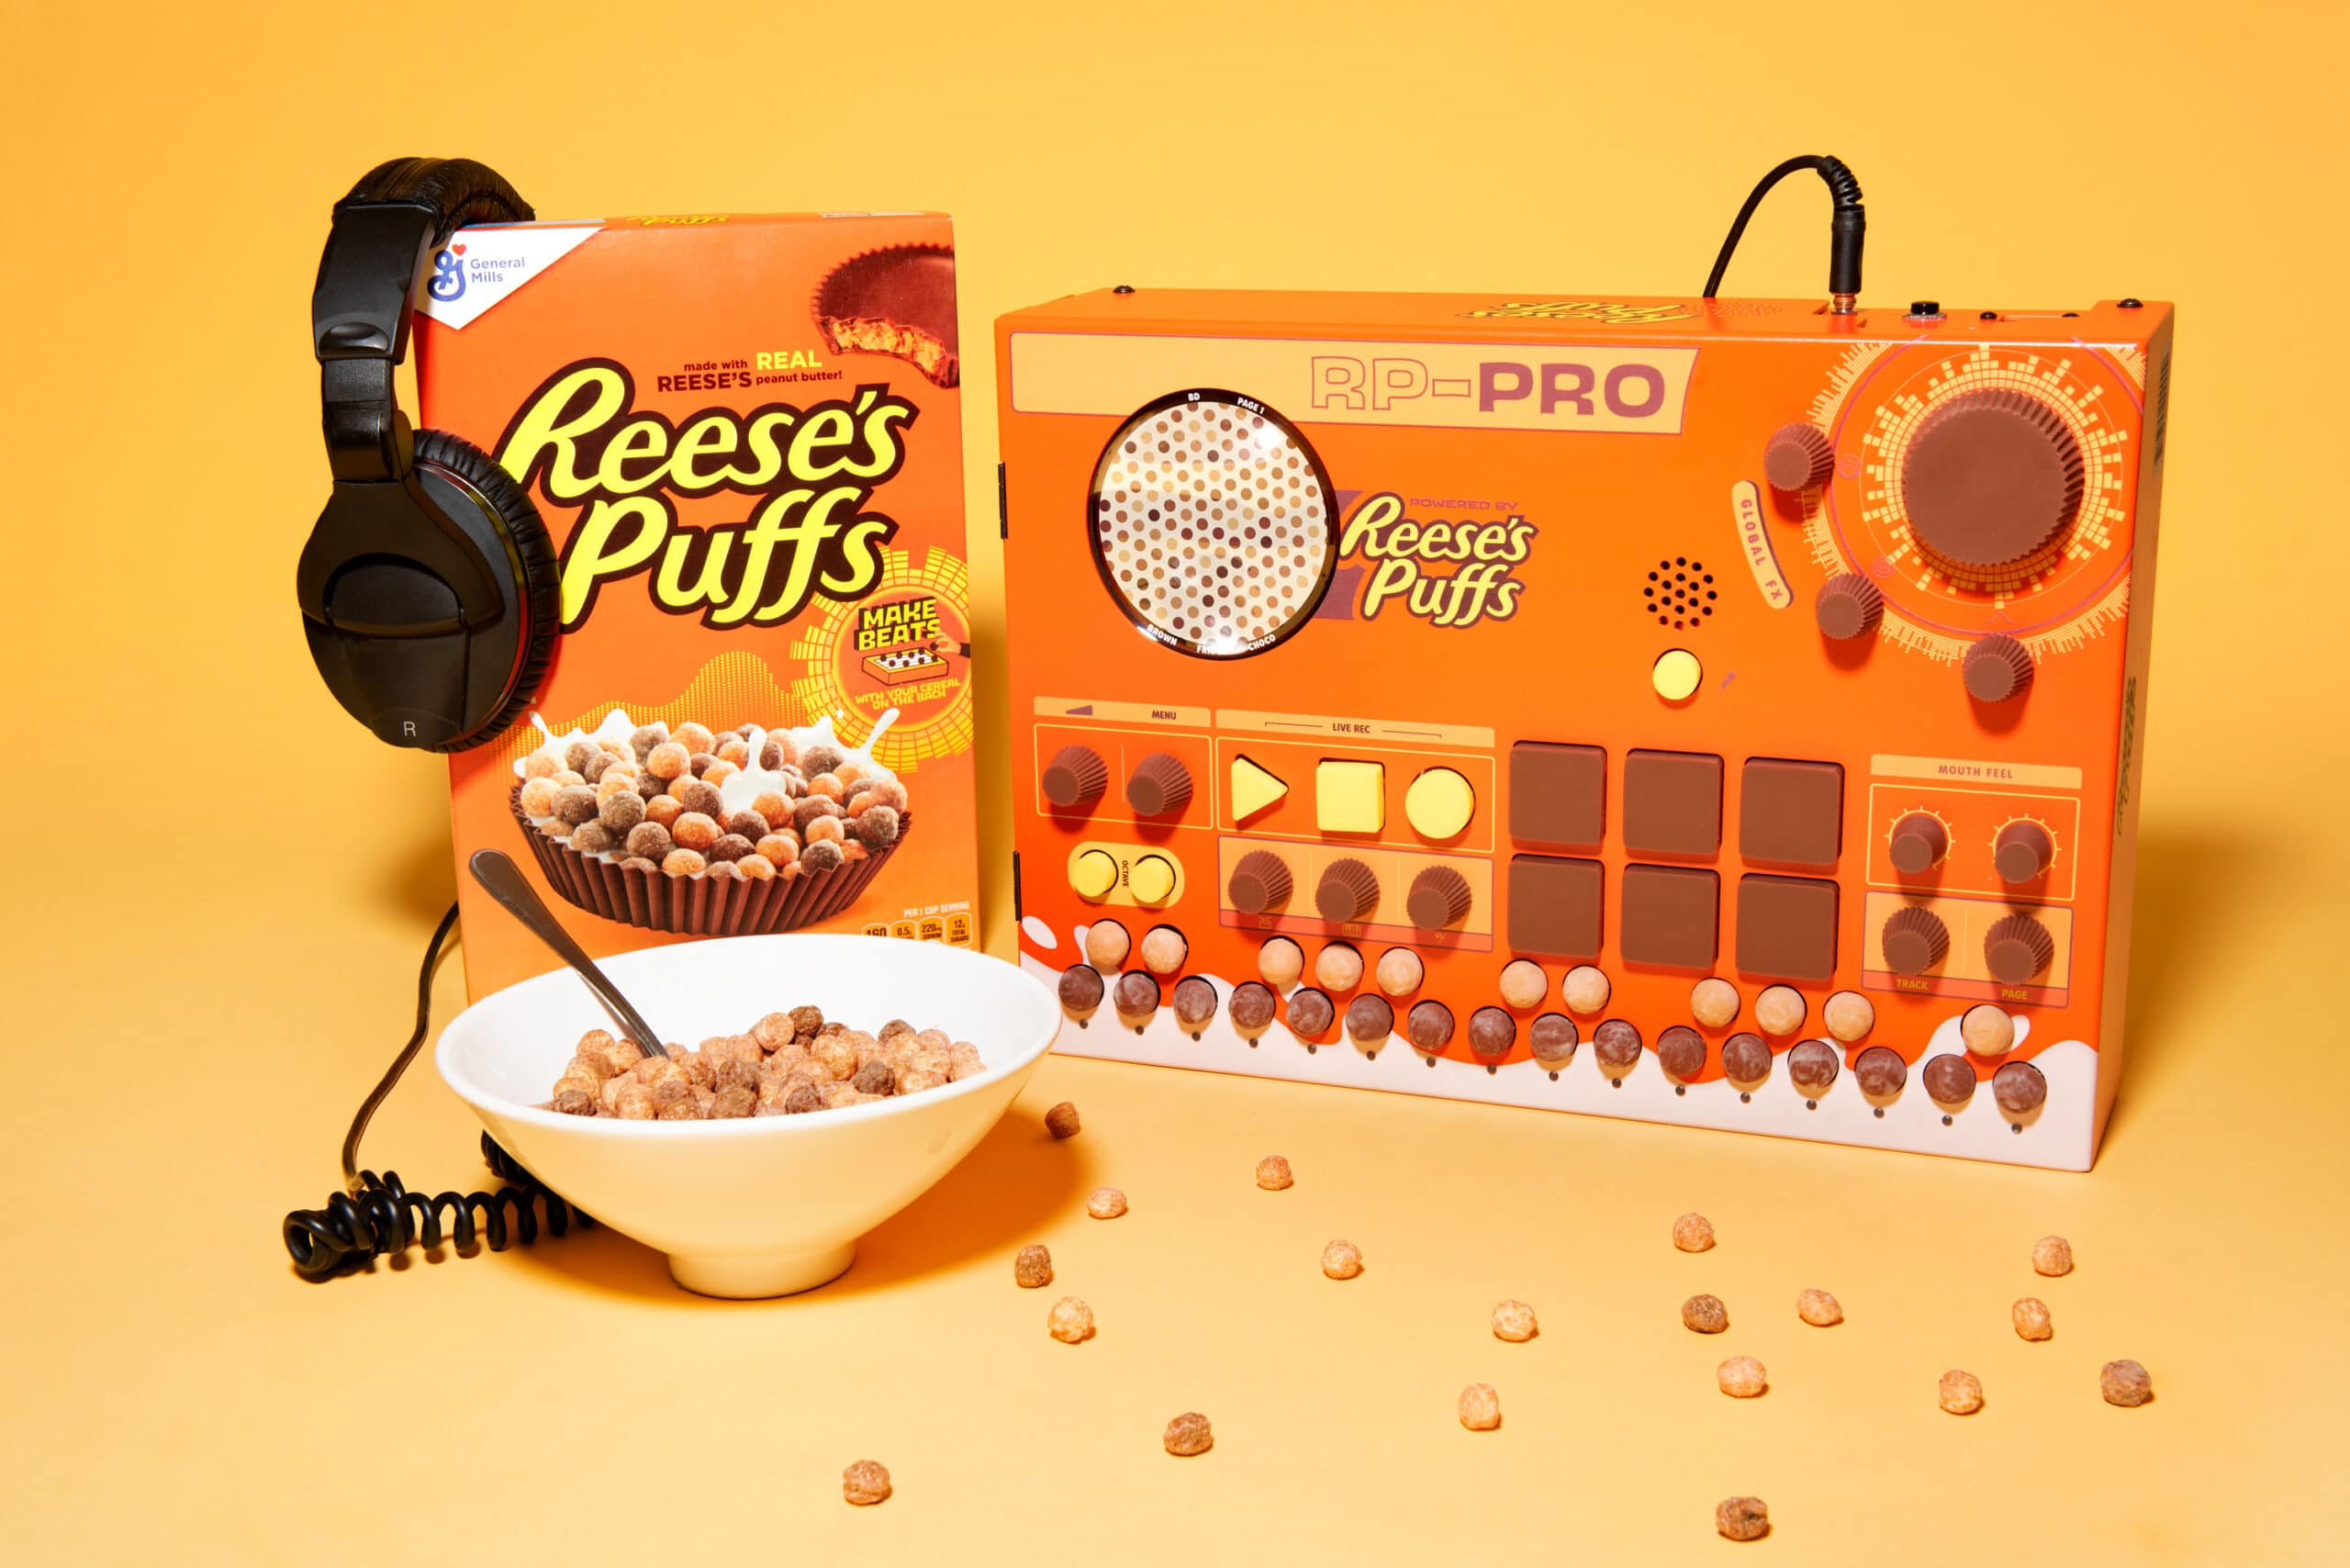 These Reese's Puffs cereal boxes let fans create their own music tracks 19